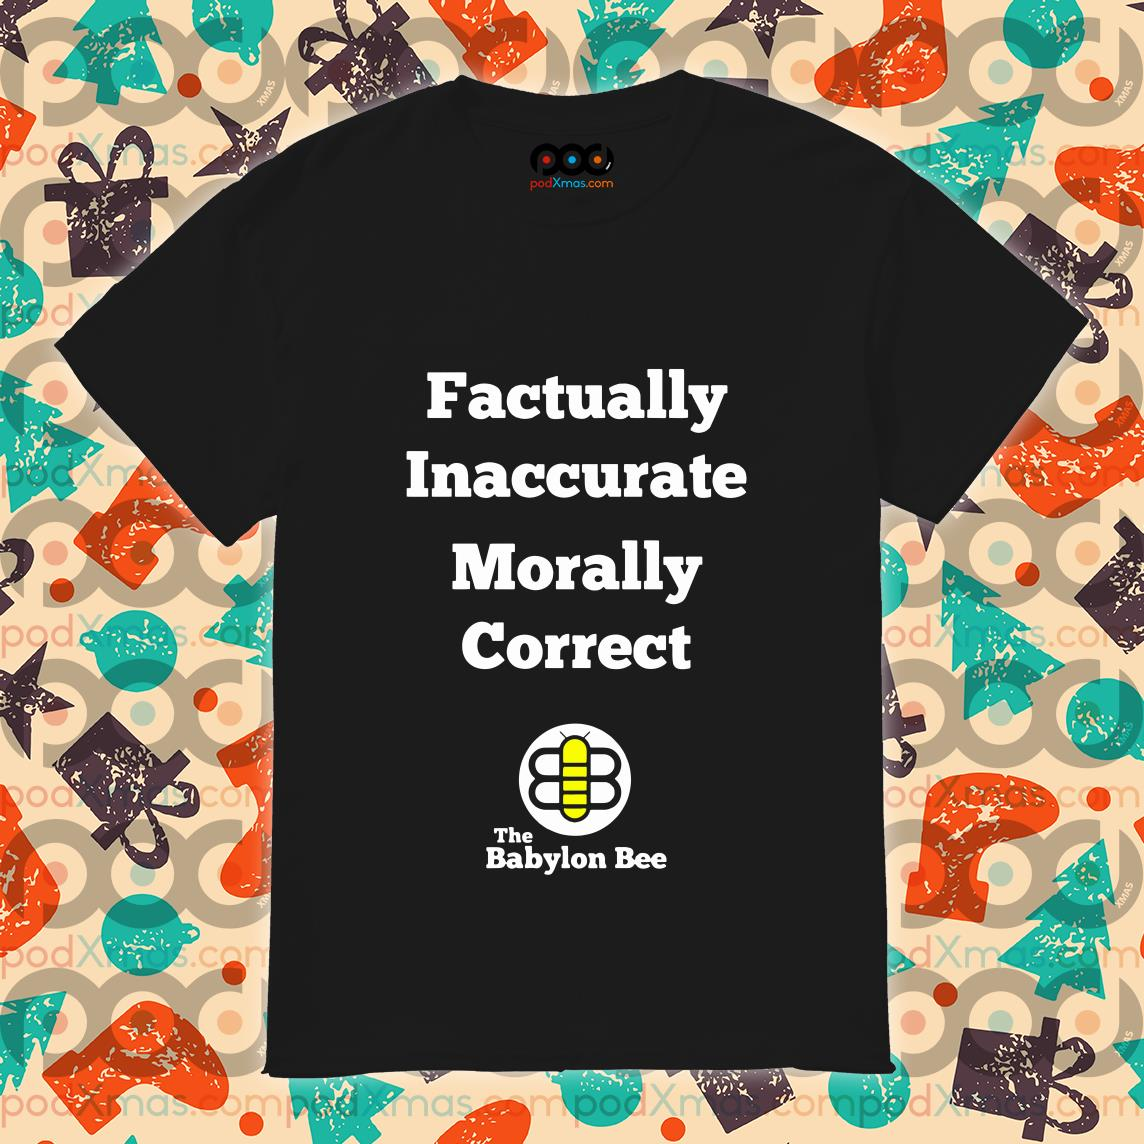 Factually inaccurate Morally correct the Babylon Bee shirt